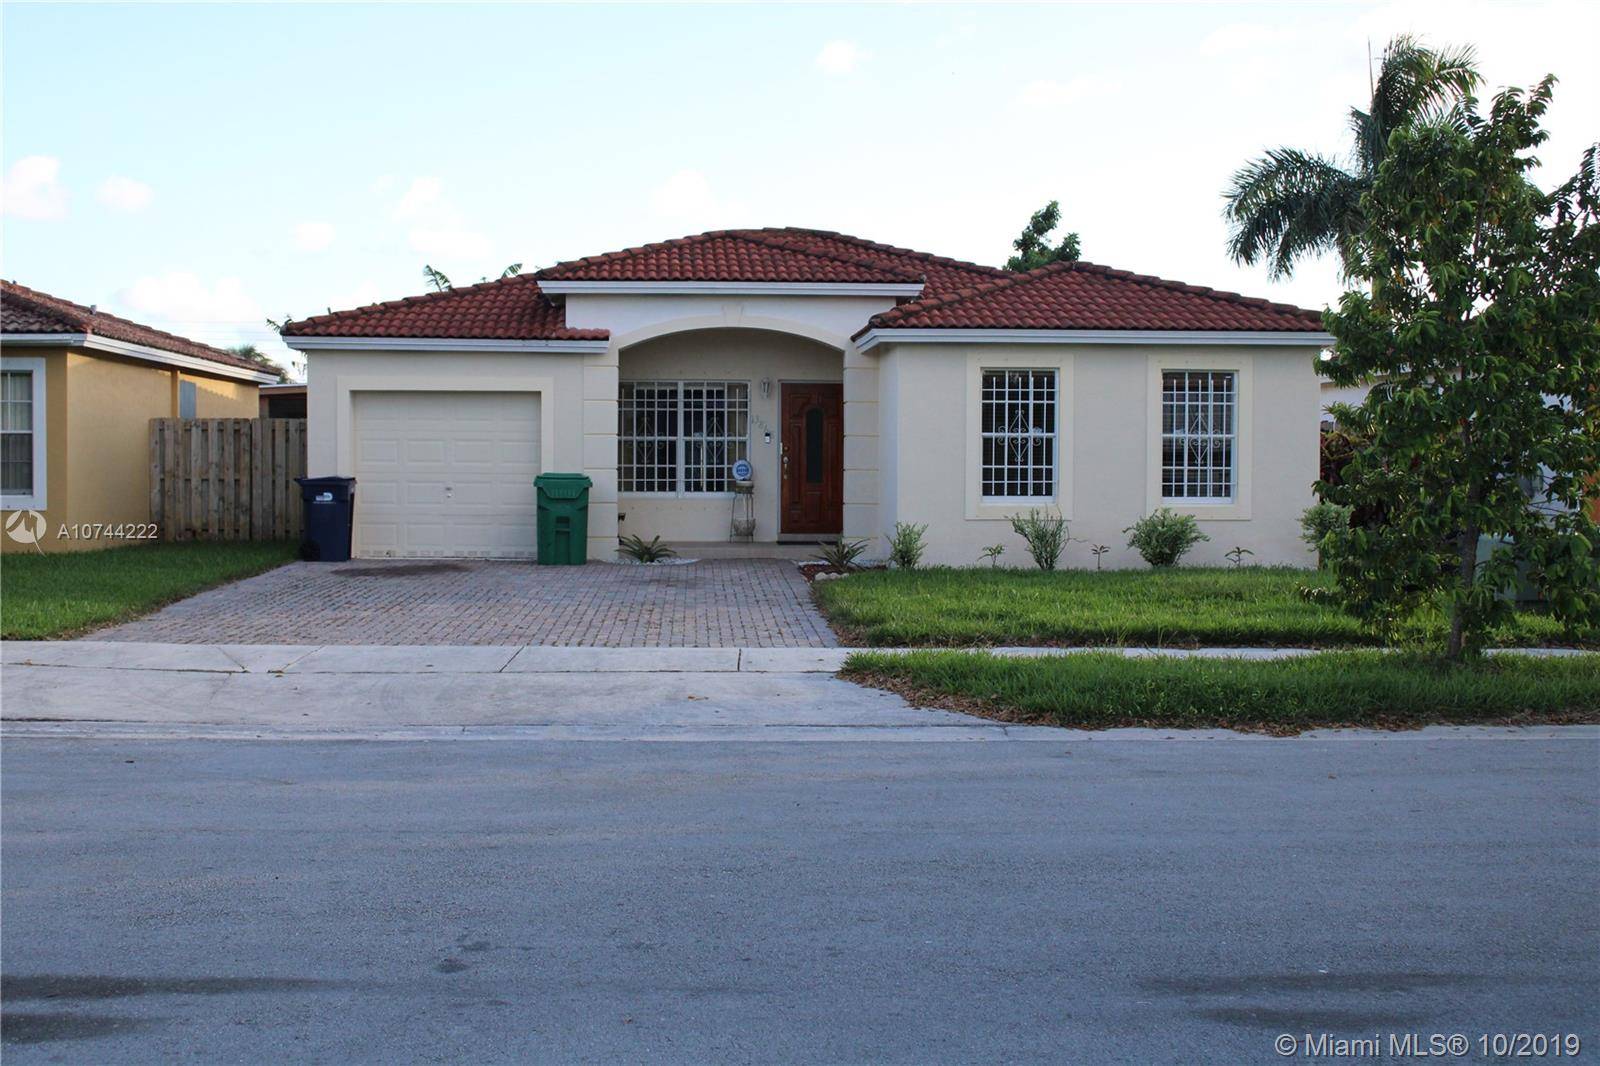 13868 SW 258th Ln, Homestead, FL 33032 - Homestead, FL real estate listing